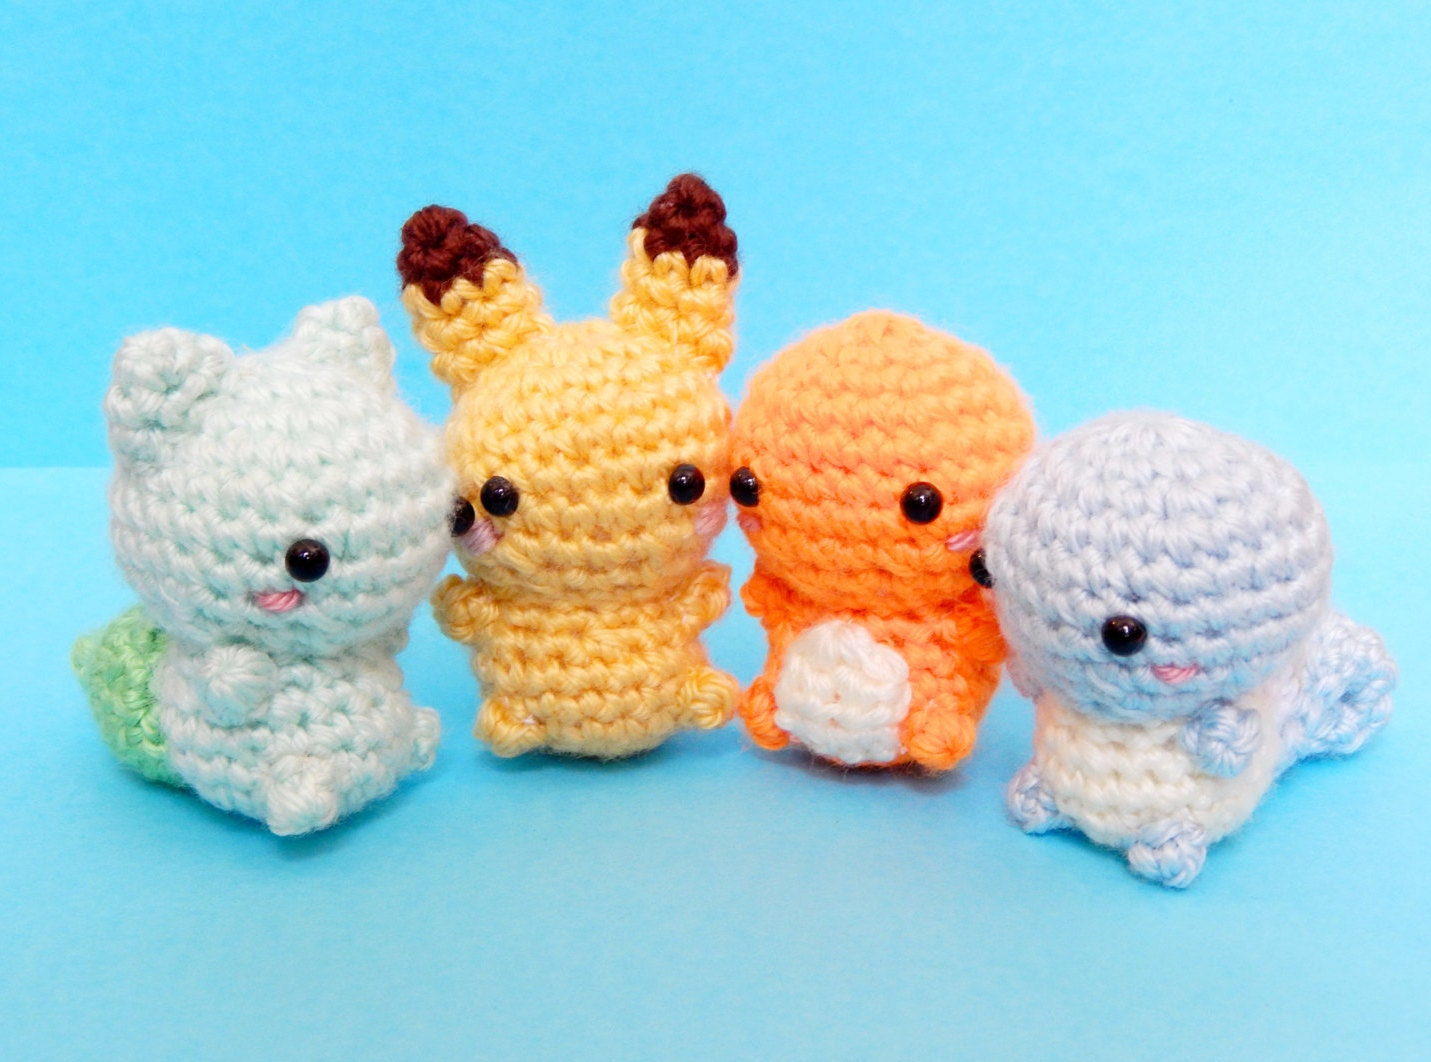 Amigurumi Pokemon Instructions : Pokemon Amigurumi Pokemon Plush Charmander by BubblyTeaShop